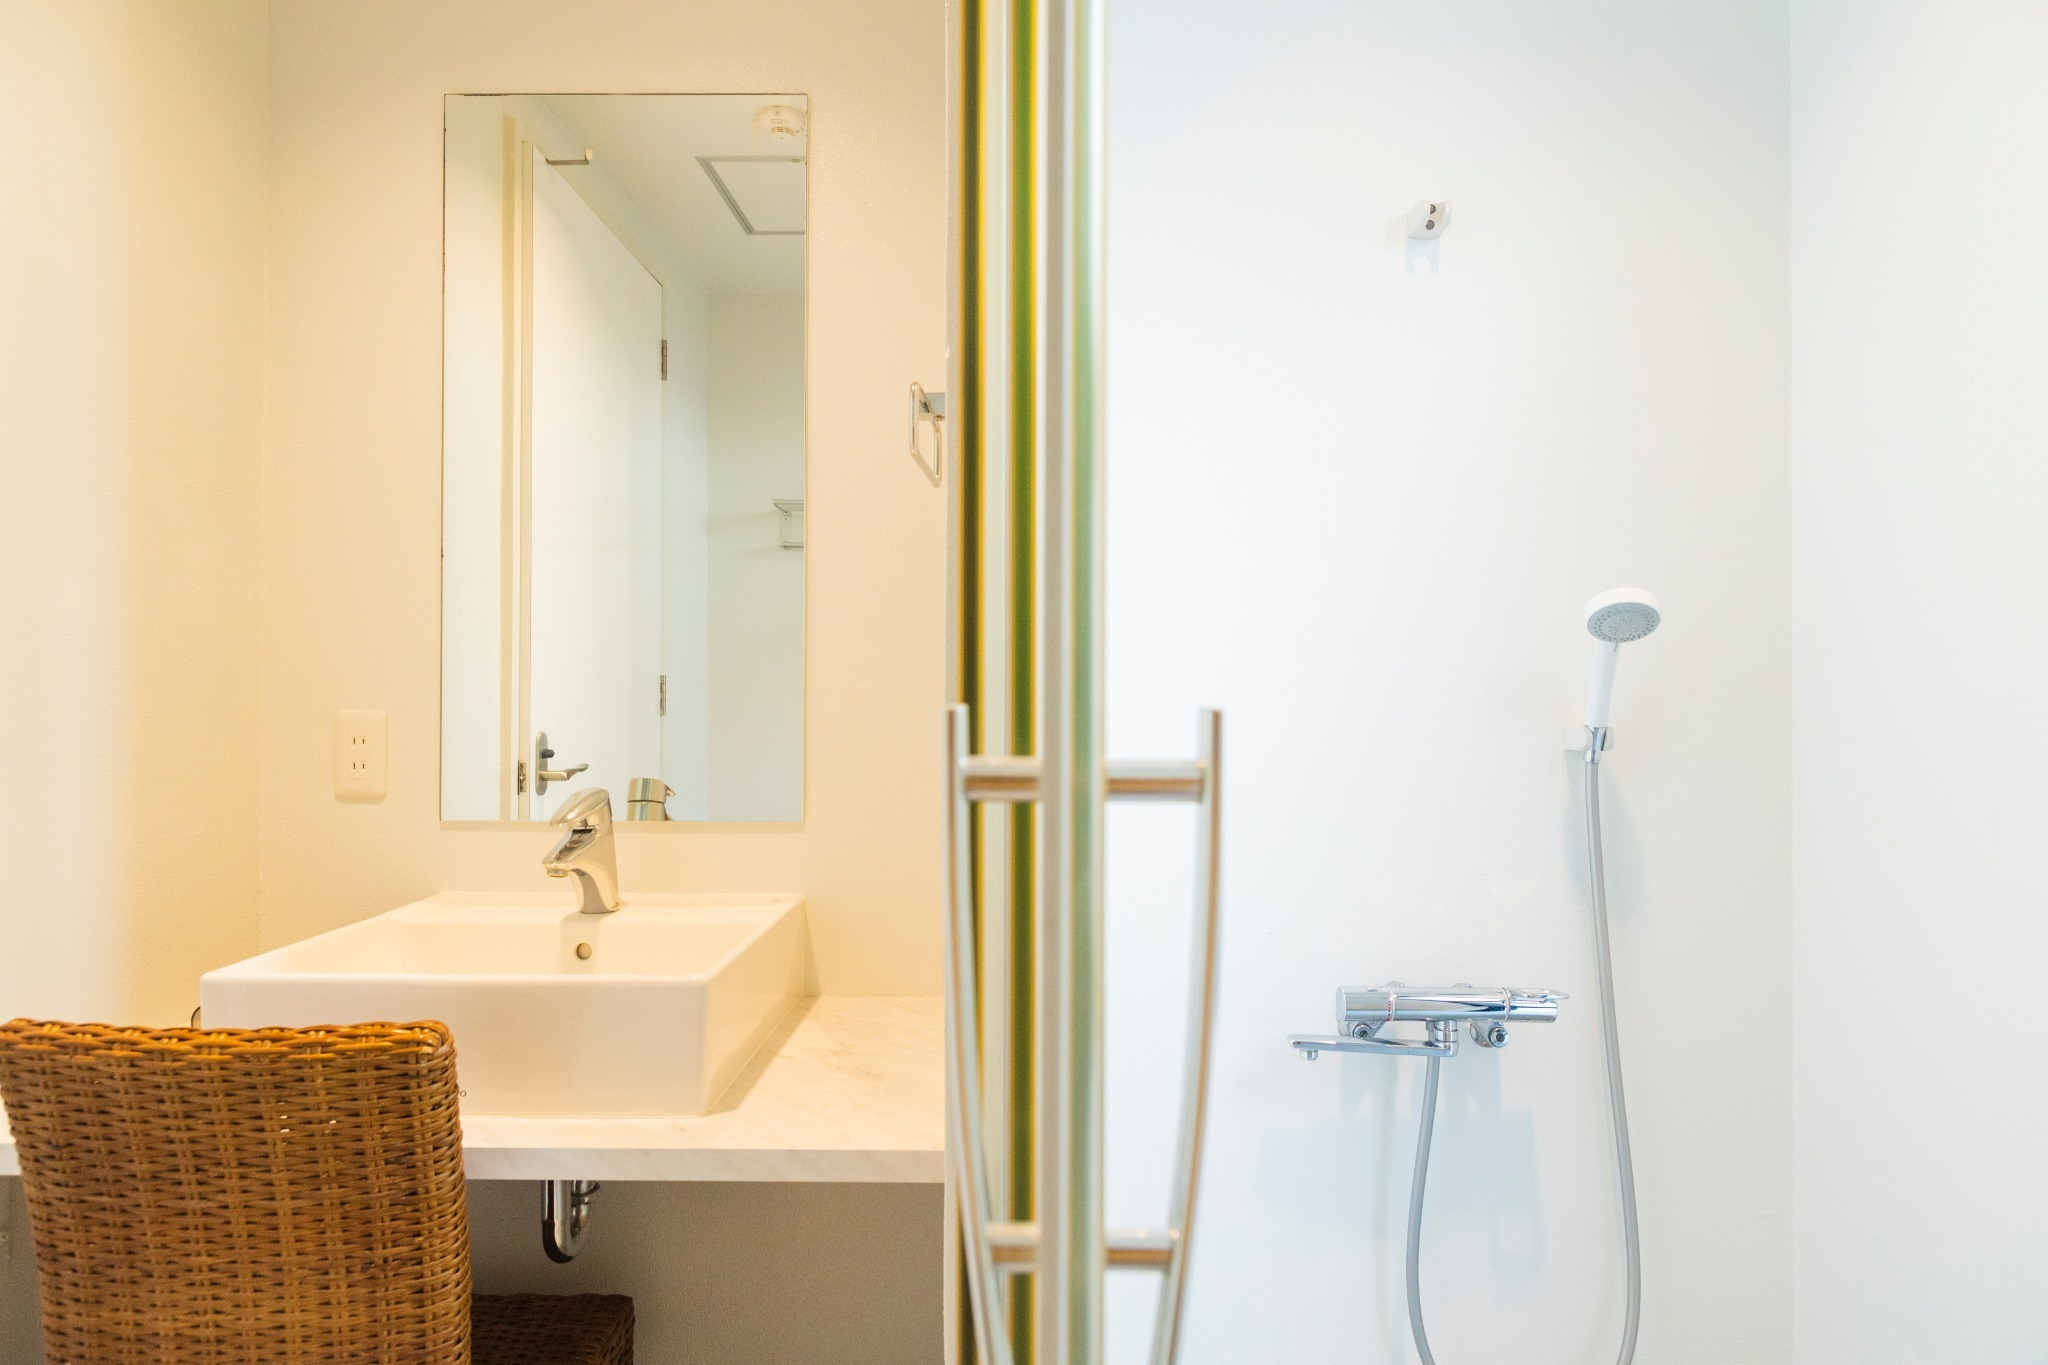 Wash room and shower room 洗面所とシャワールーム